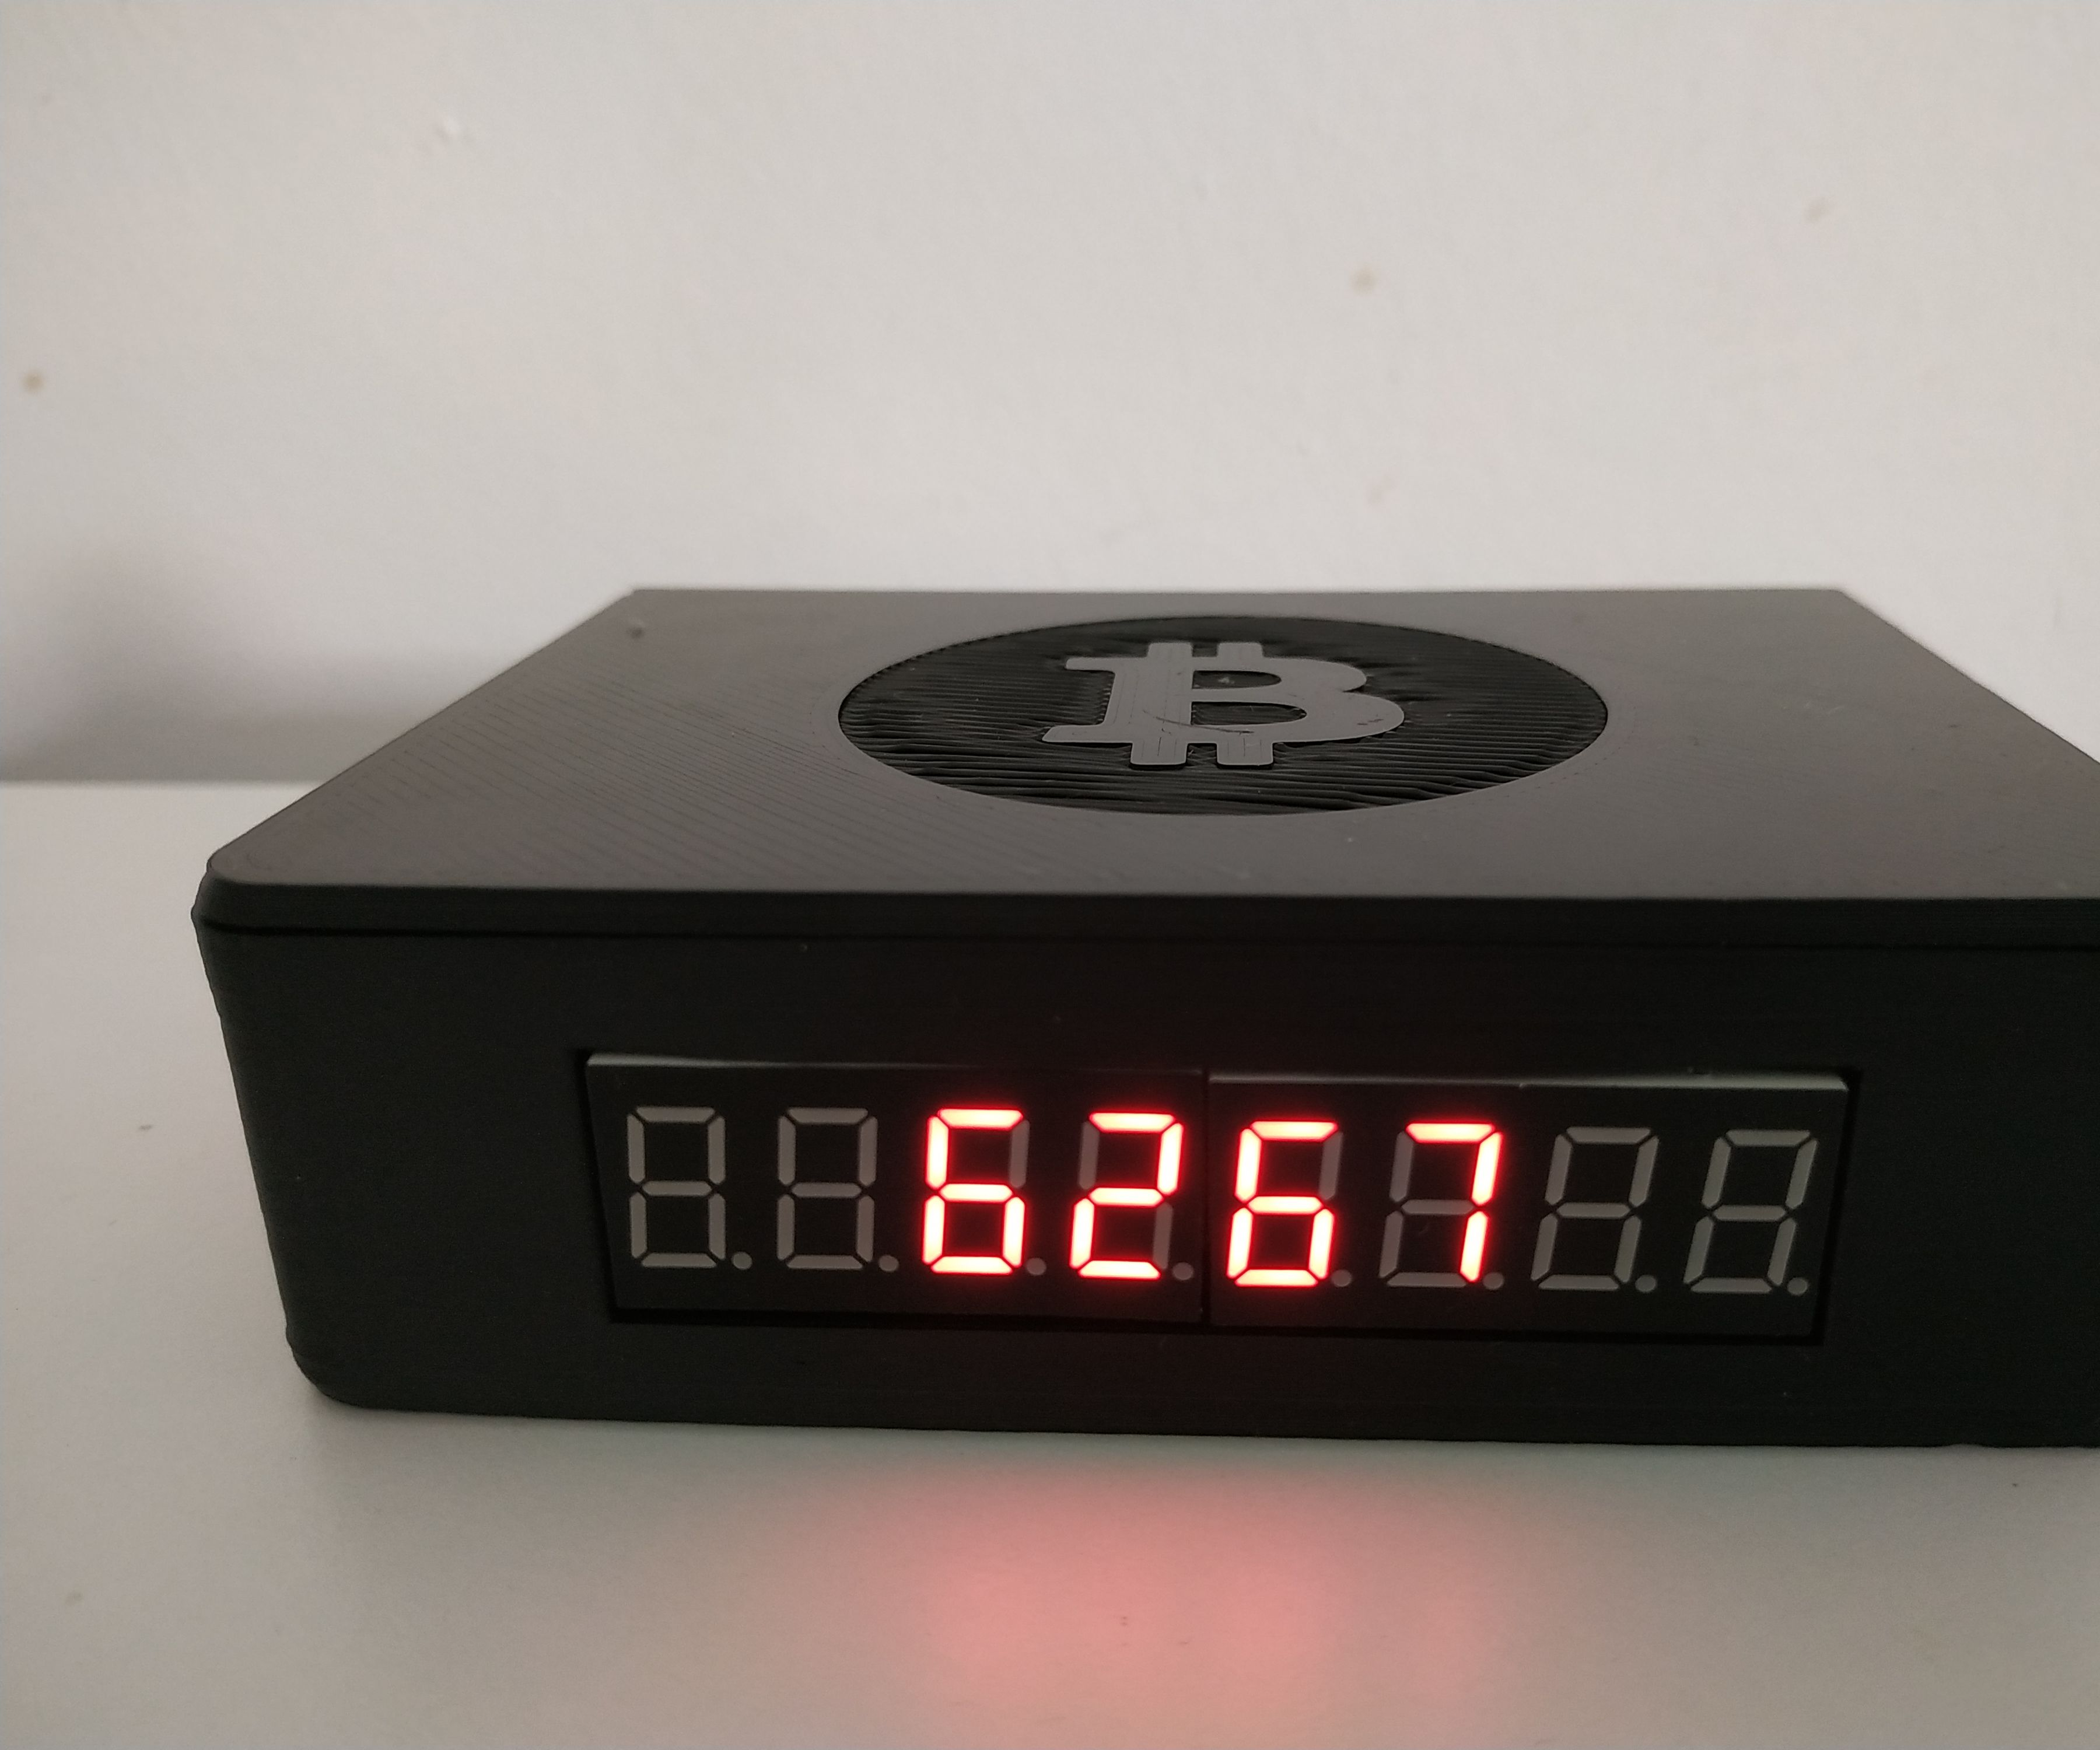 Simple Bitcoin Ticker - Overview